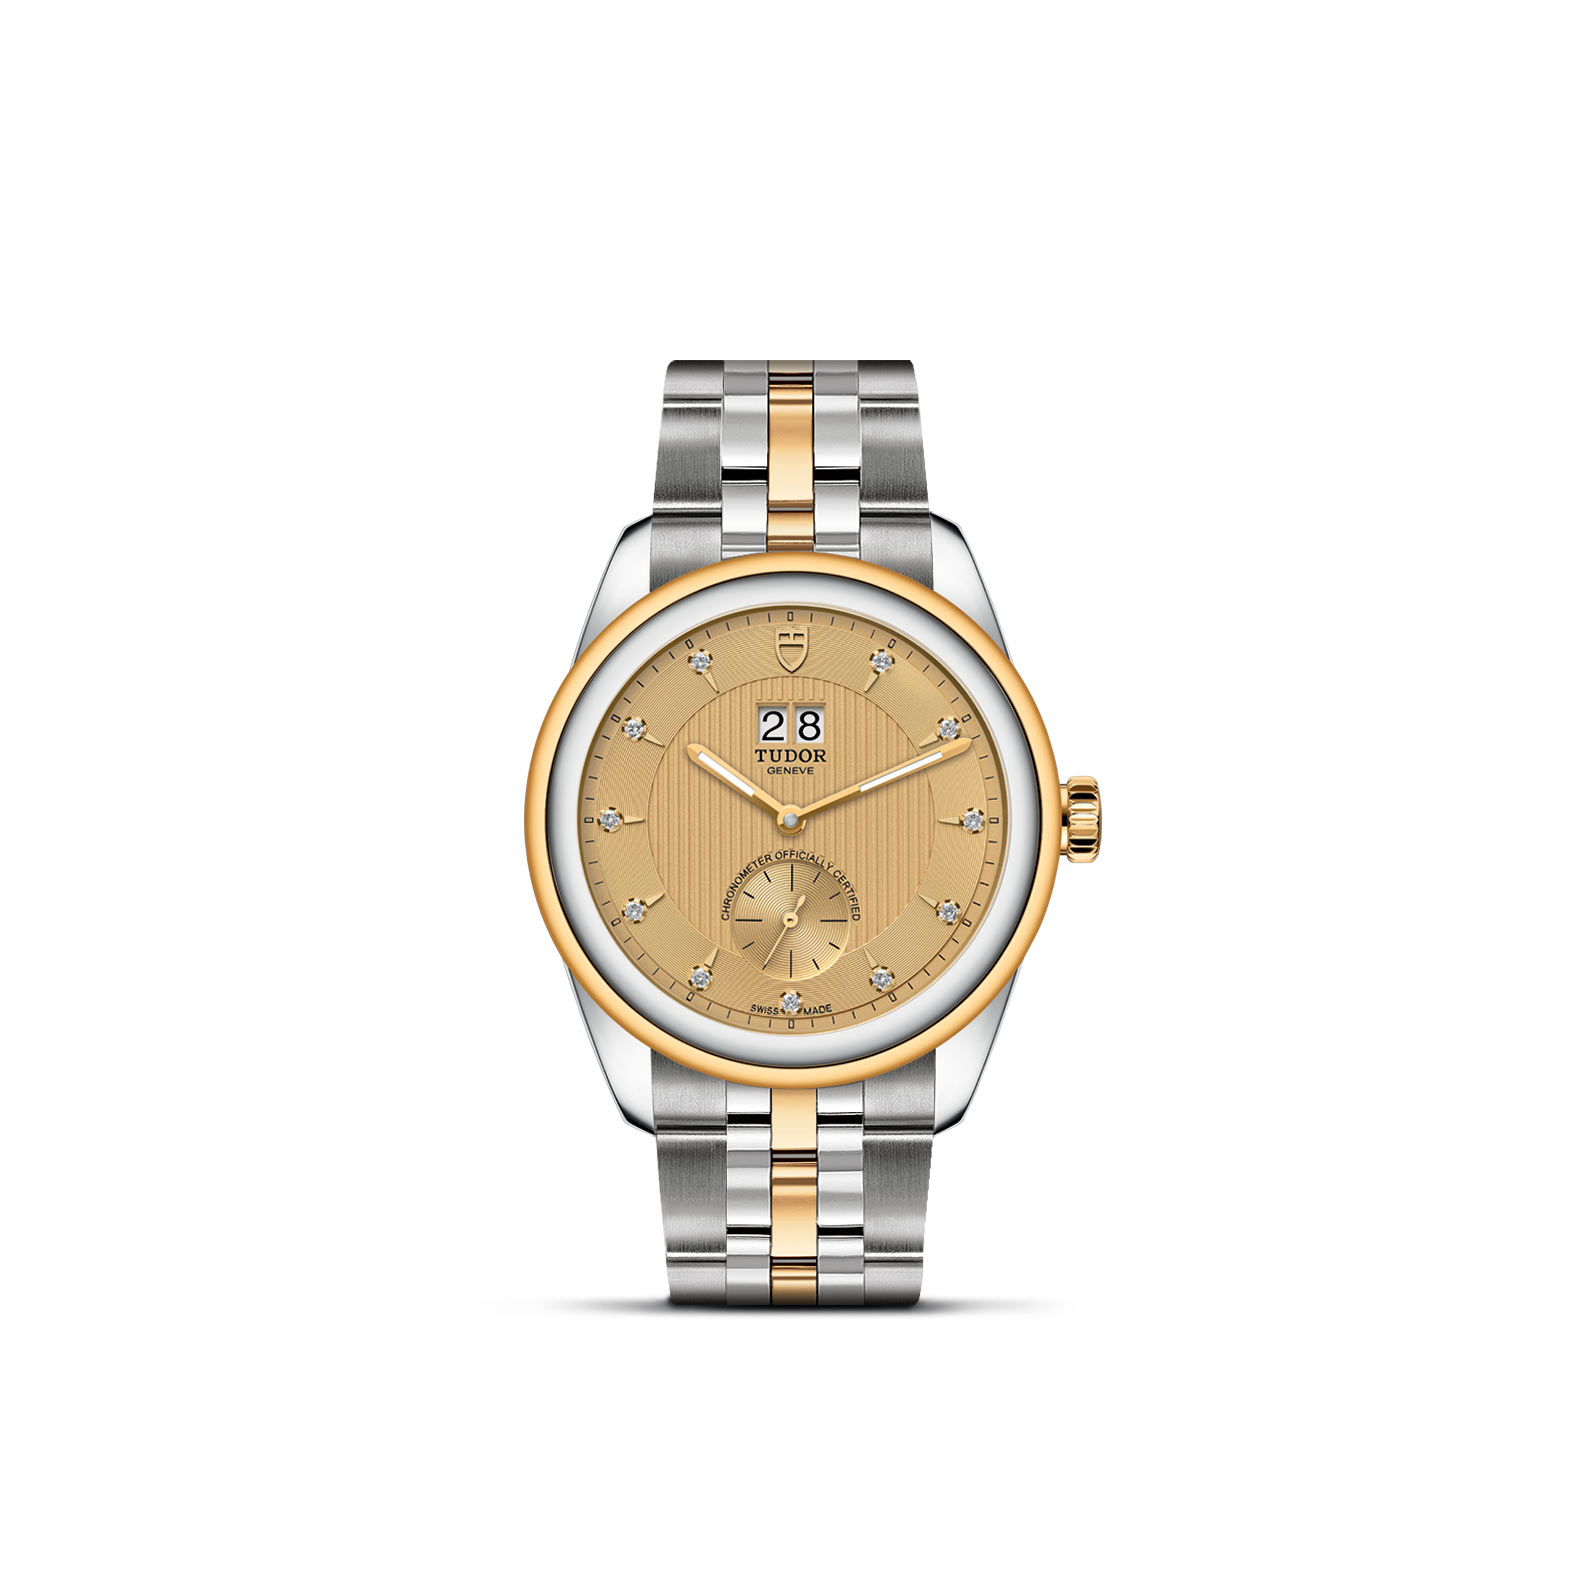 Goldfinger Jewelry TUDOR Glamour Double Date collection